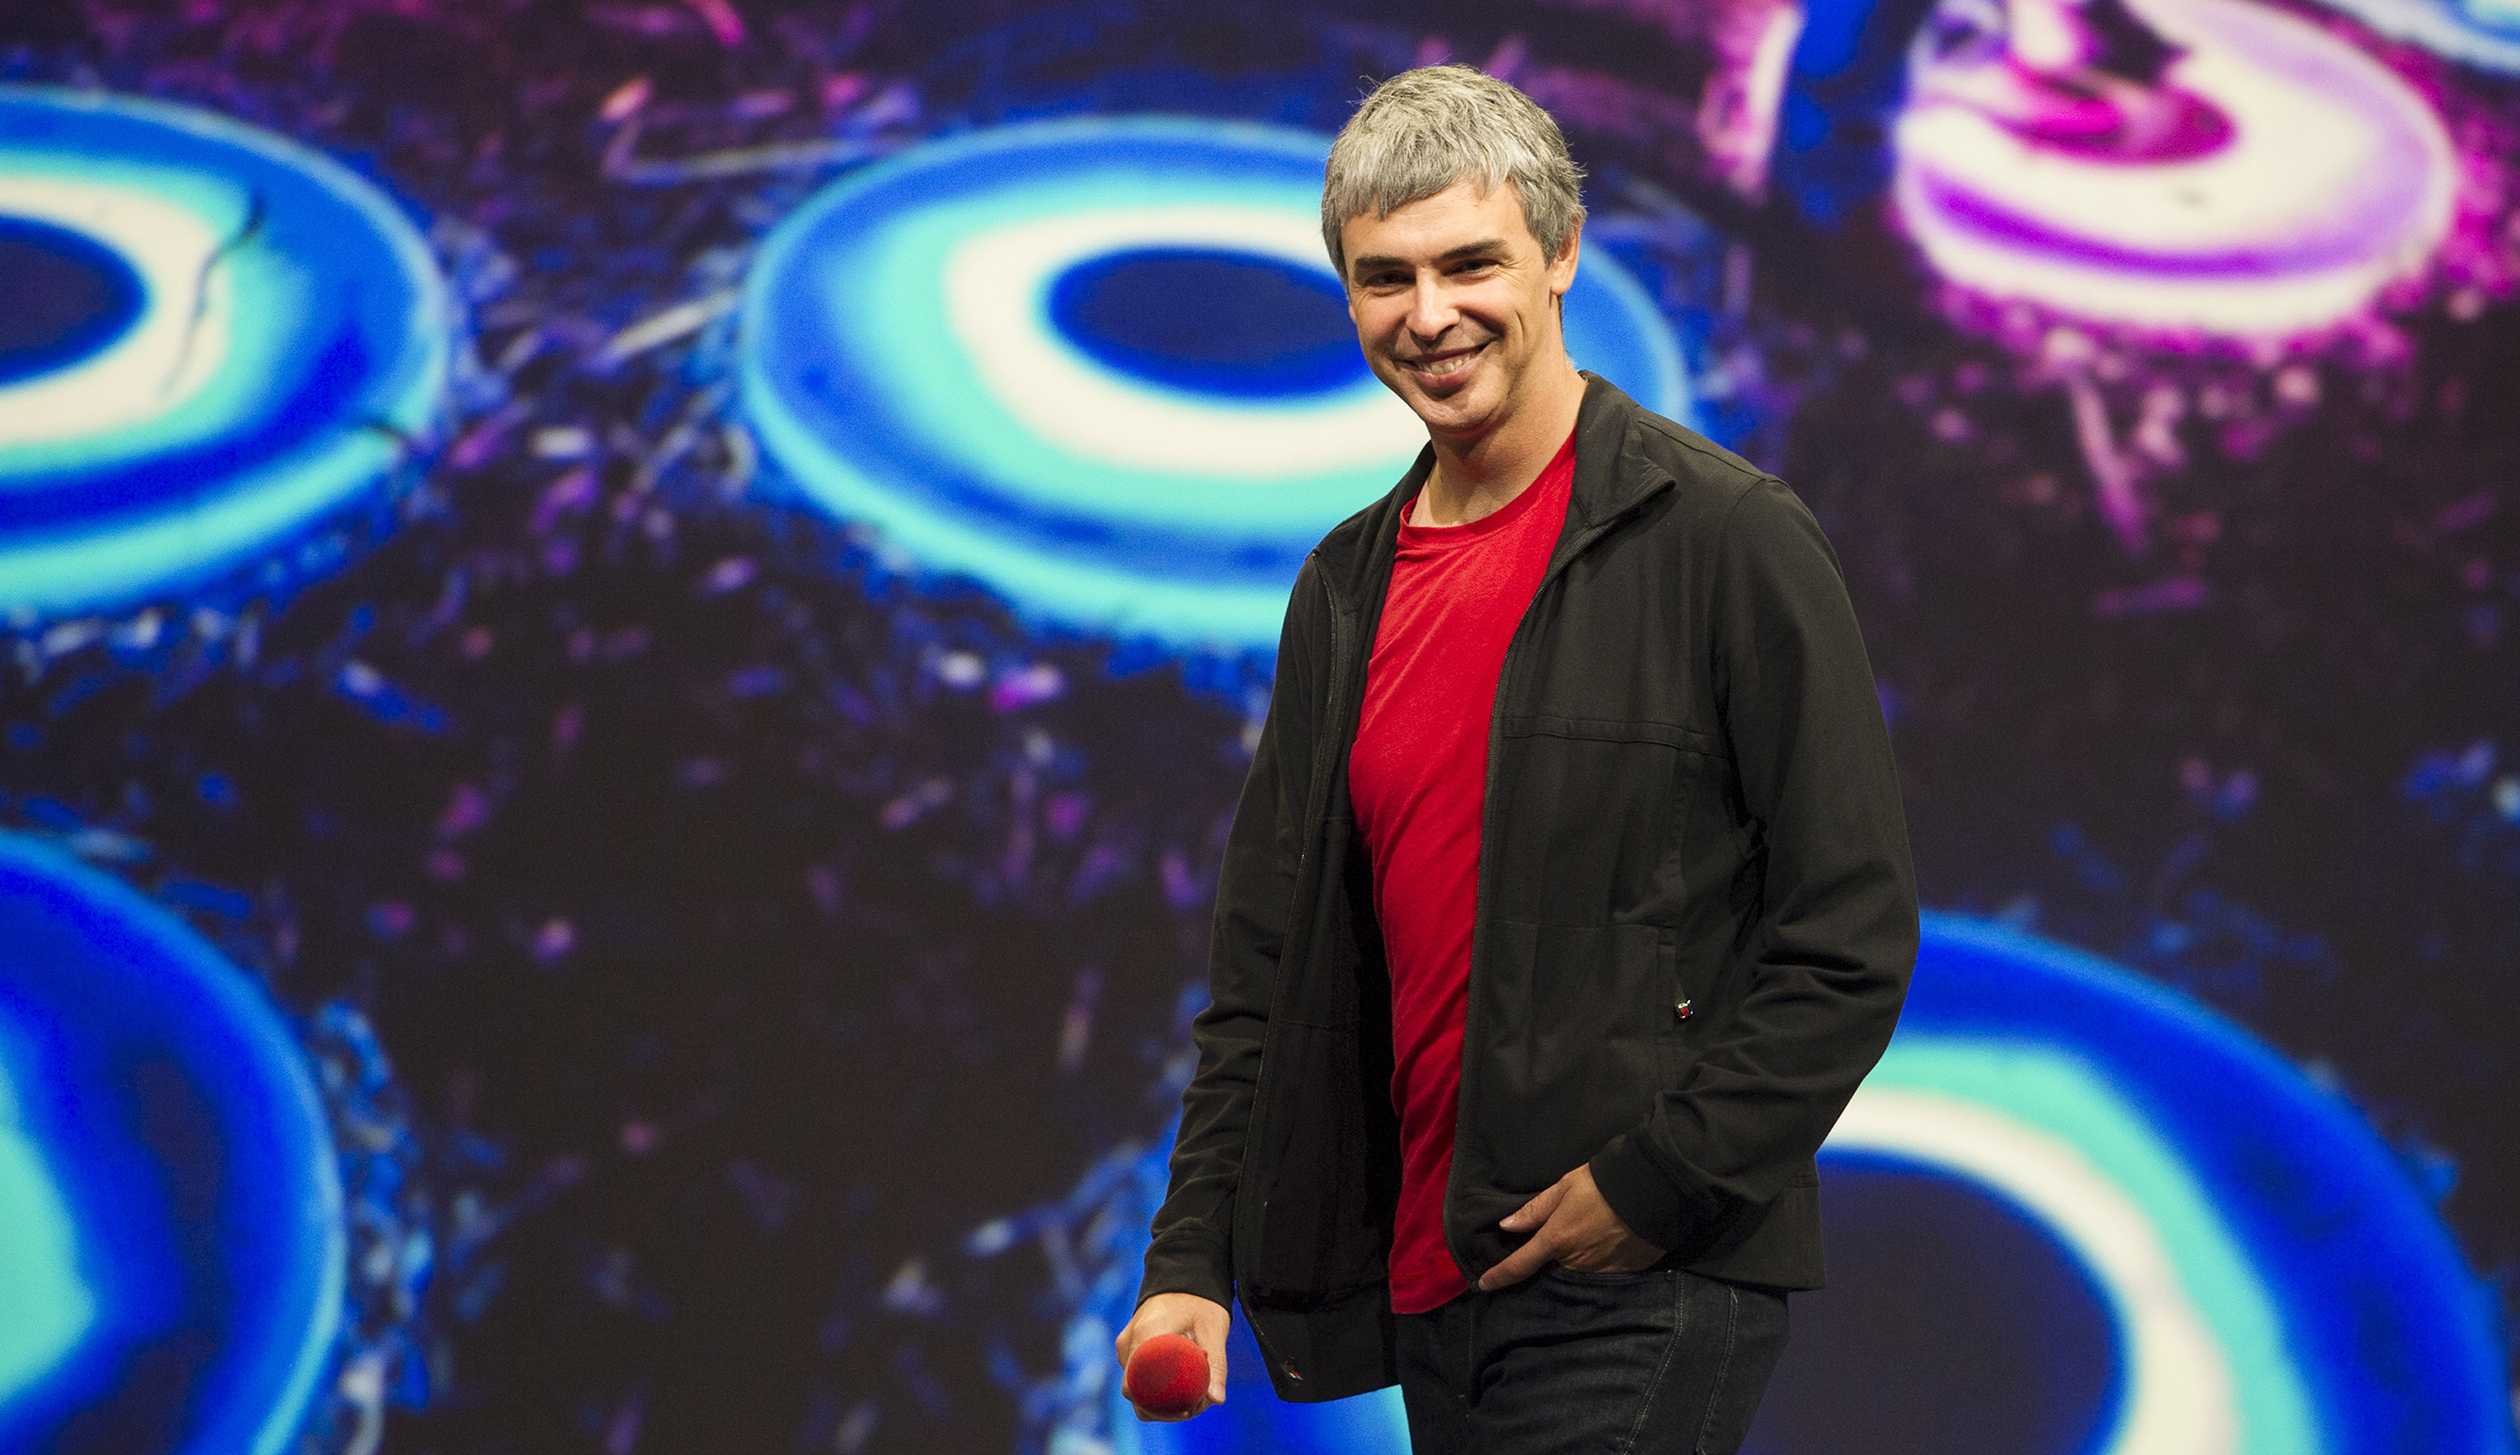 Key Speakers At The Google I/O Annual Developers Conference